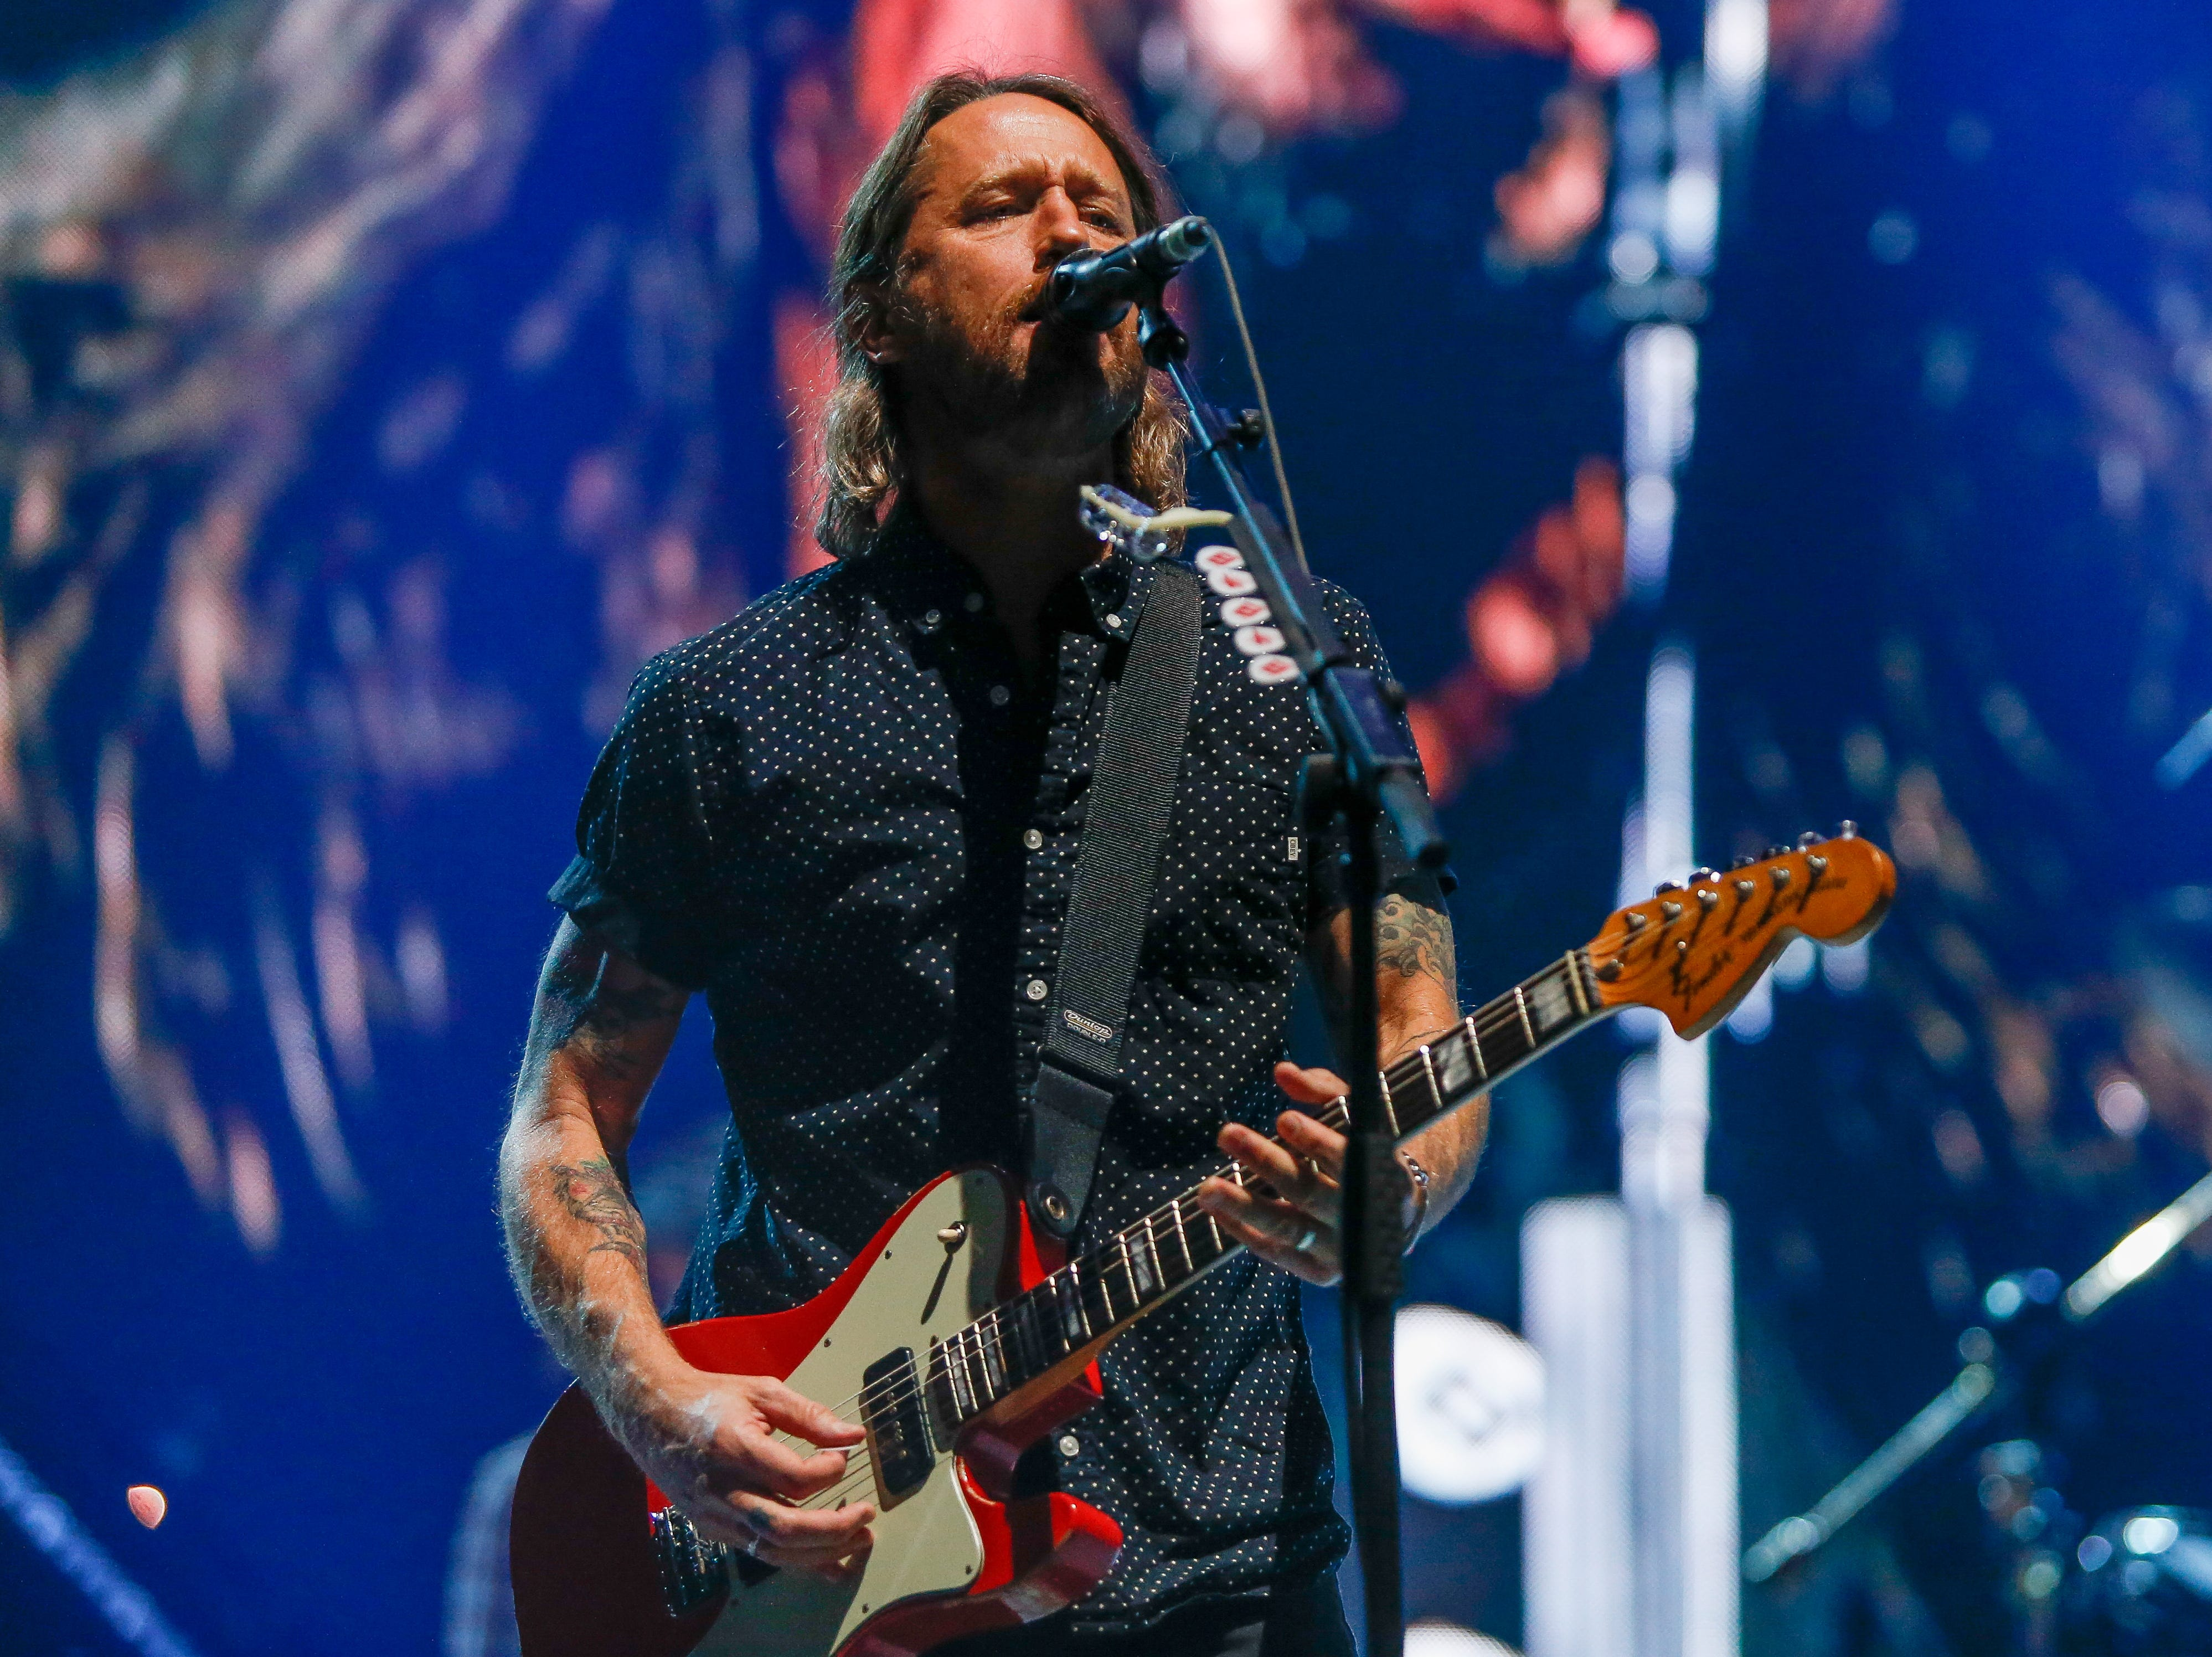 Chris Shiflett plays lead guitar and adds backing vocals.